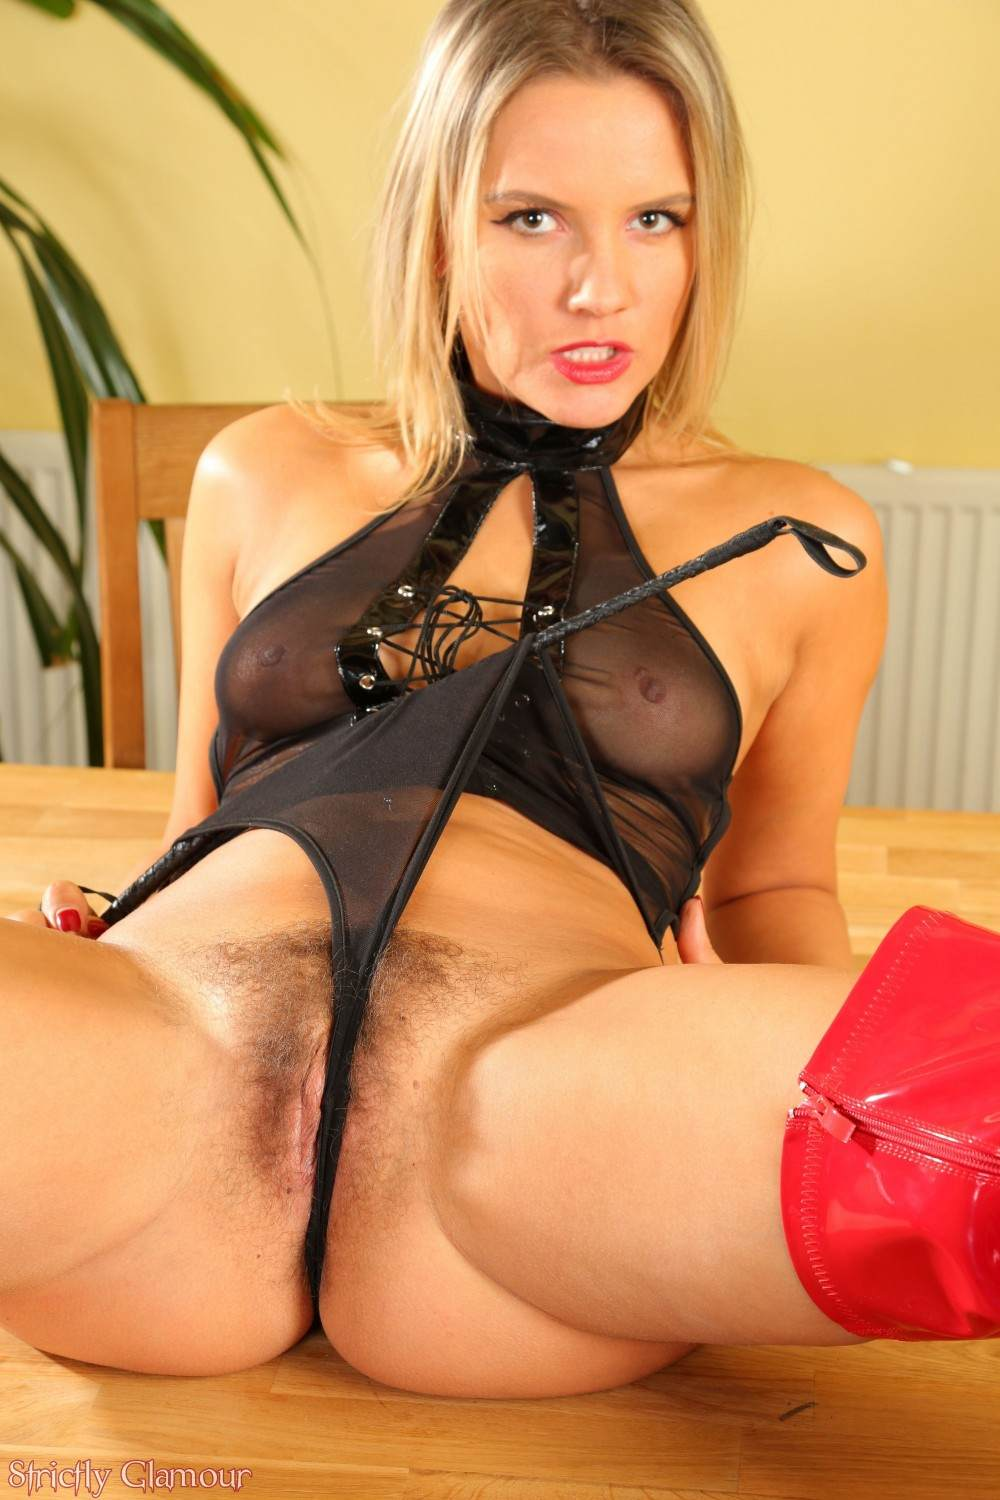 Picture #5 of Become submissive to obey the blond mistress and maybe she will let you sniff her hairy pussy afterwards